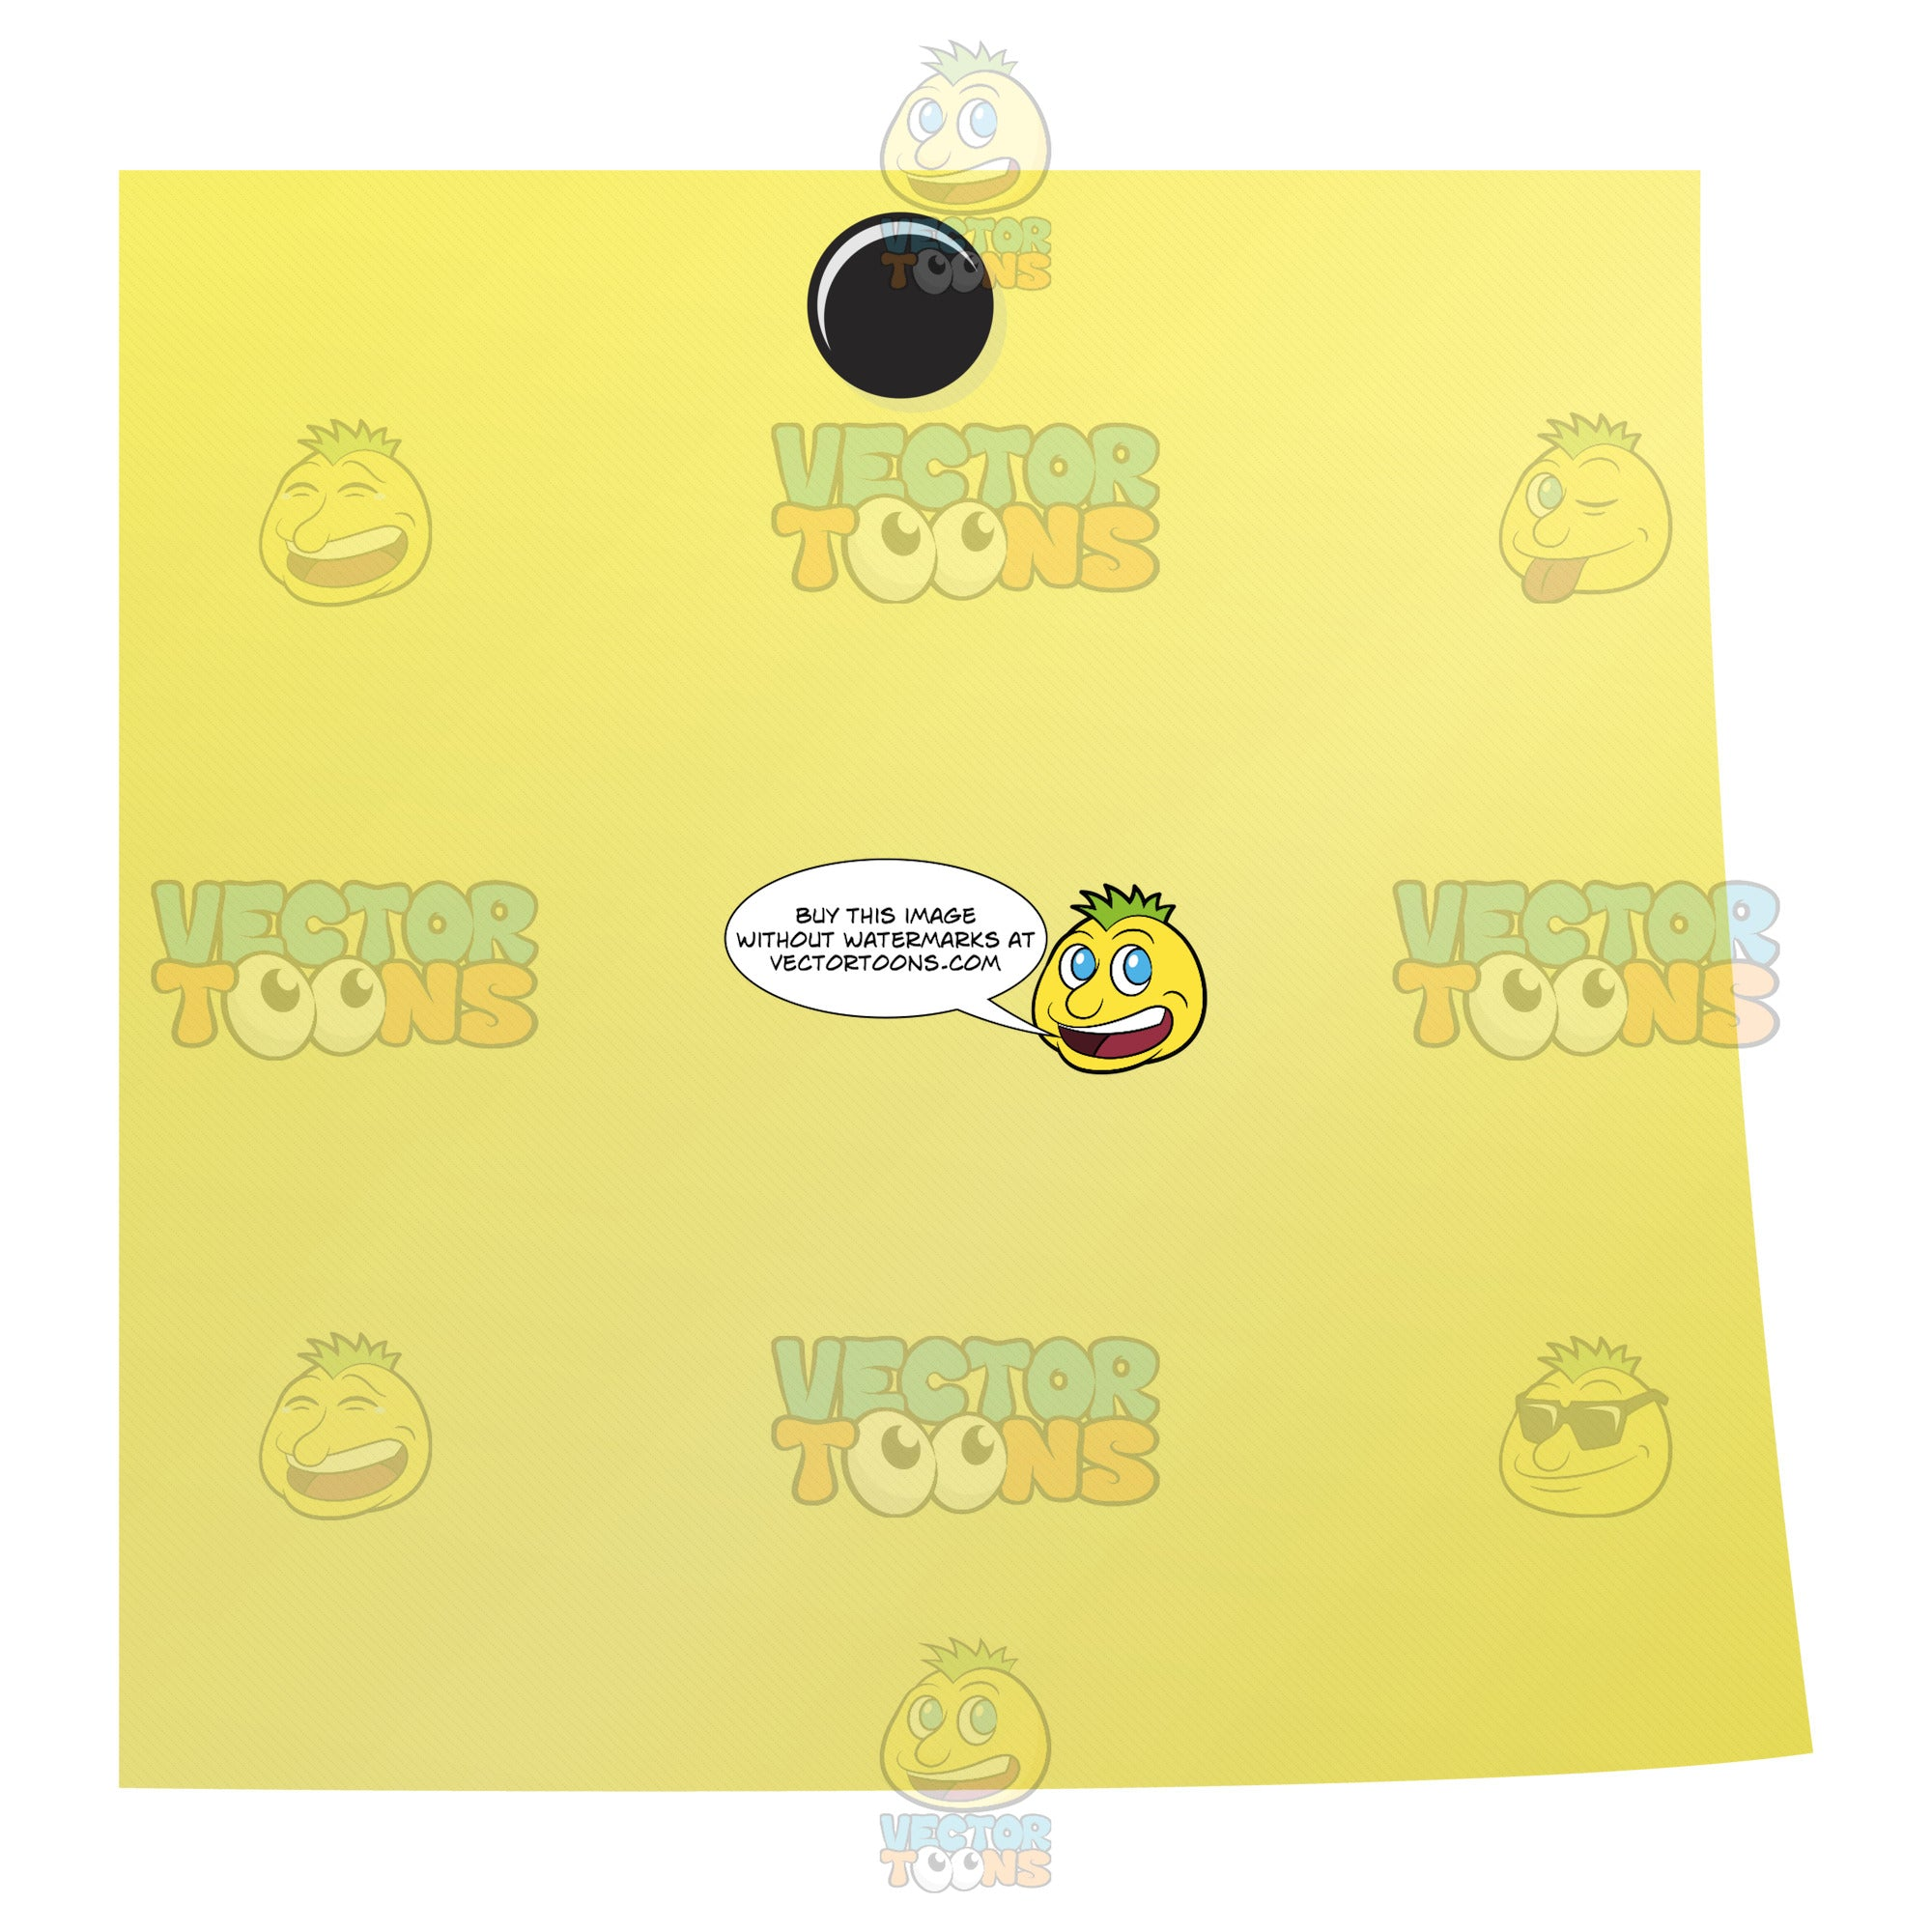 Yellow Blank Post-It Square Note Paper With Black Thumb Tack In Center Top Flat,